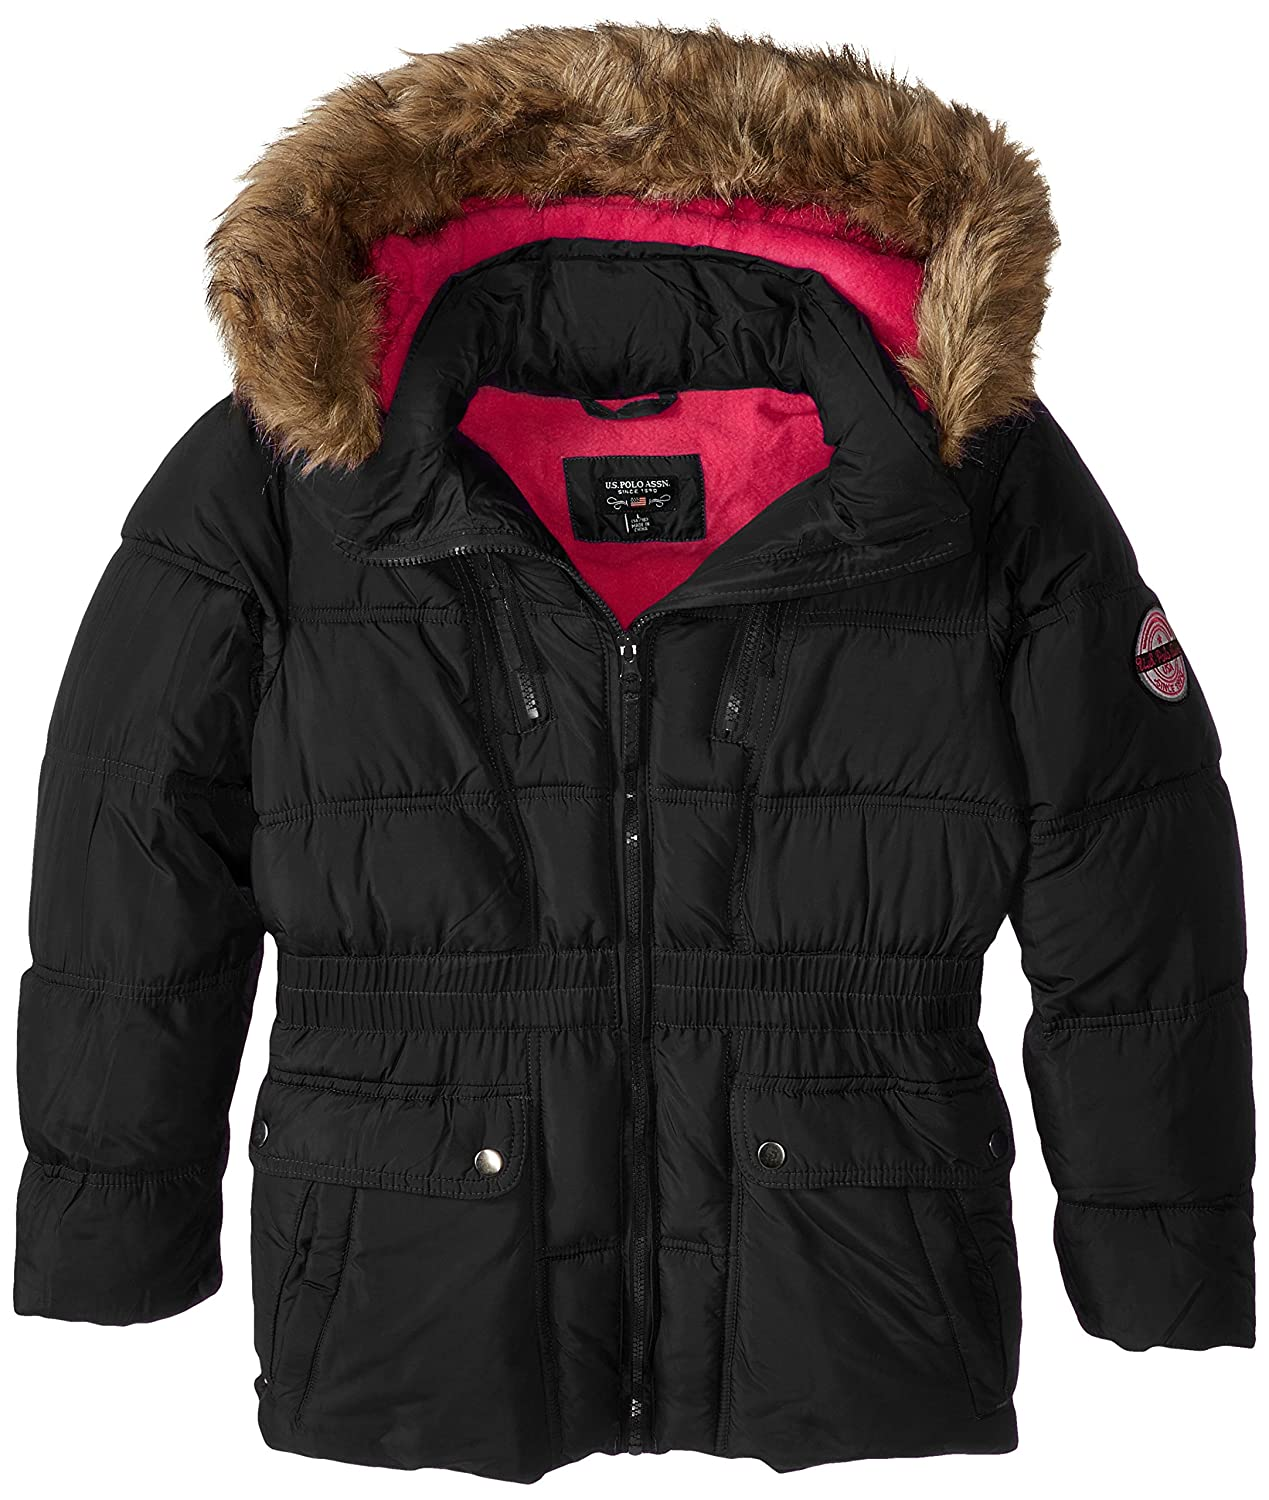 Girls Bubble Jacket U.S Polo Assn More Styles Available